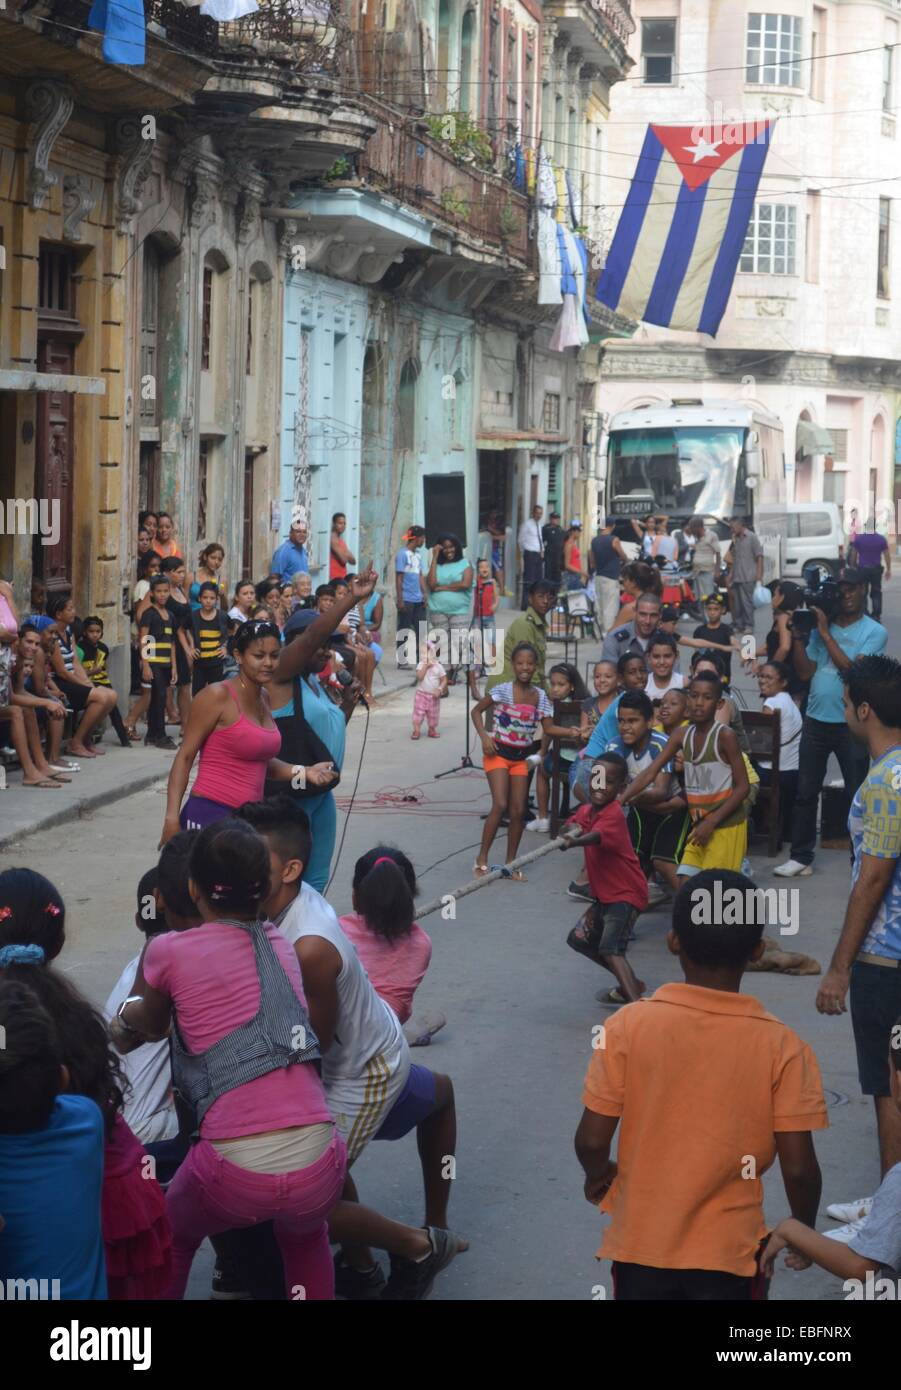 Children participate in a school sports day, on the streets of Centro Habana, Havana, Cuba - Stock Image